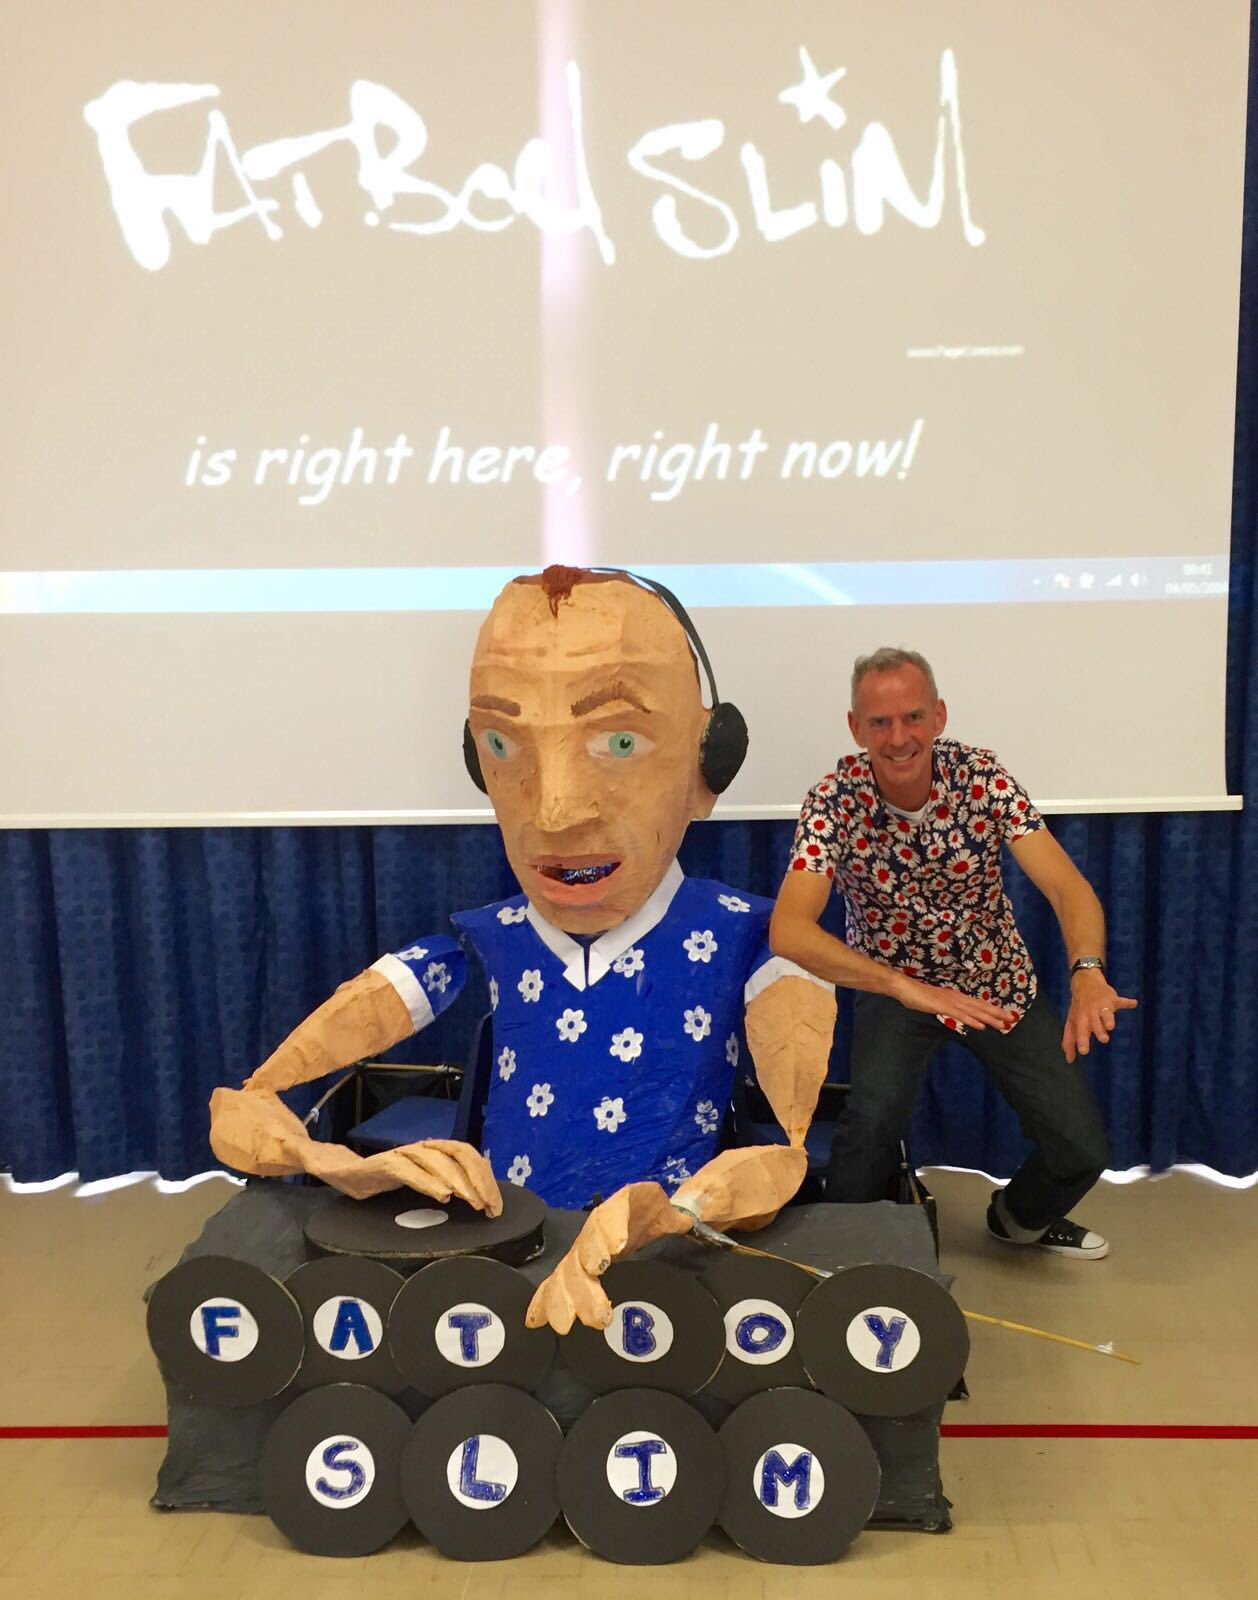 RT @FatboySlim: Chuffed to bits that meridian school made this for the @brightfest kids parade this Saturday #BrightonCelebrates 🙂🙂🙂 https:…